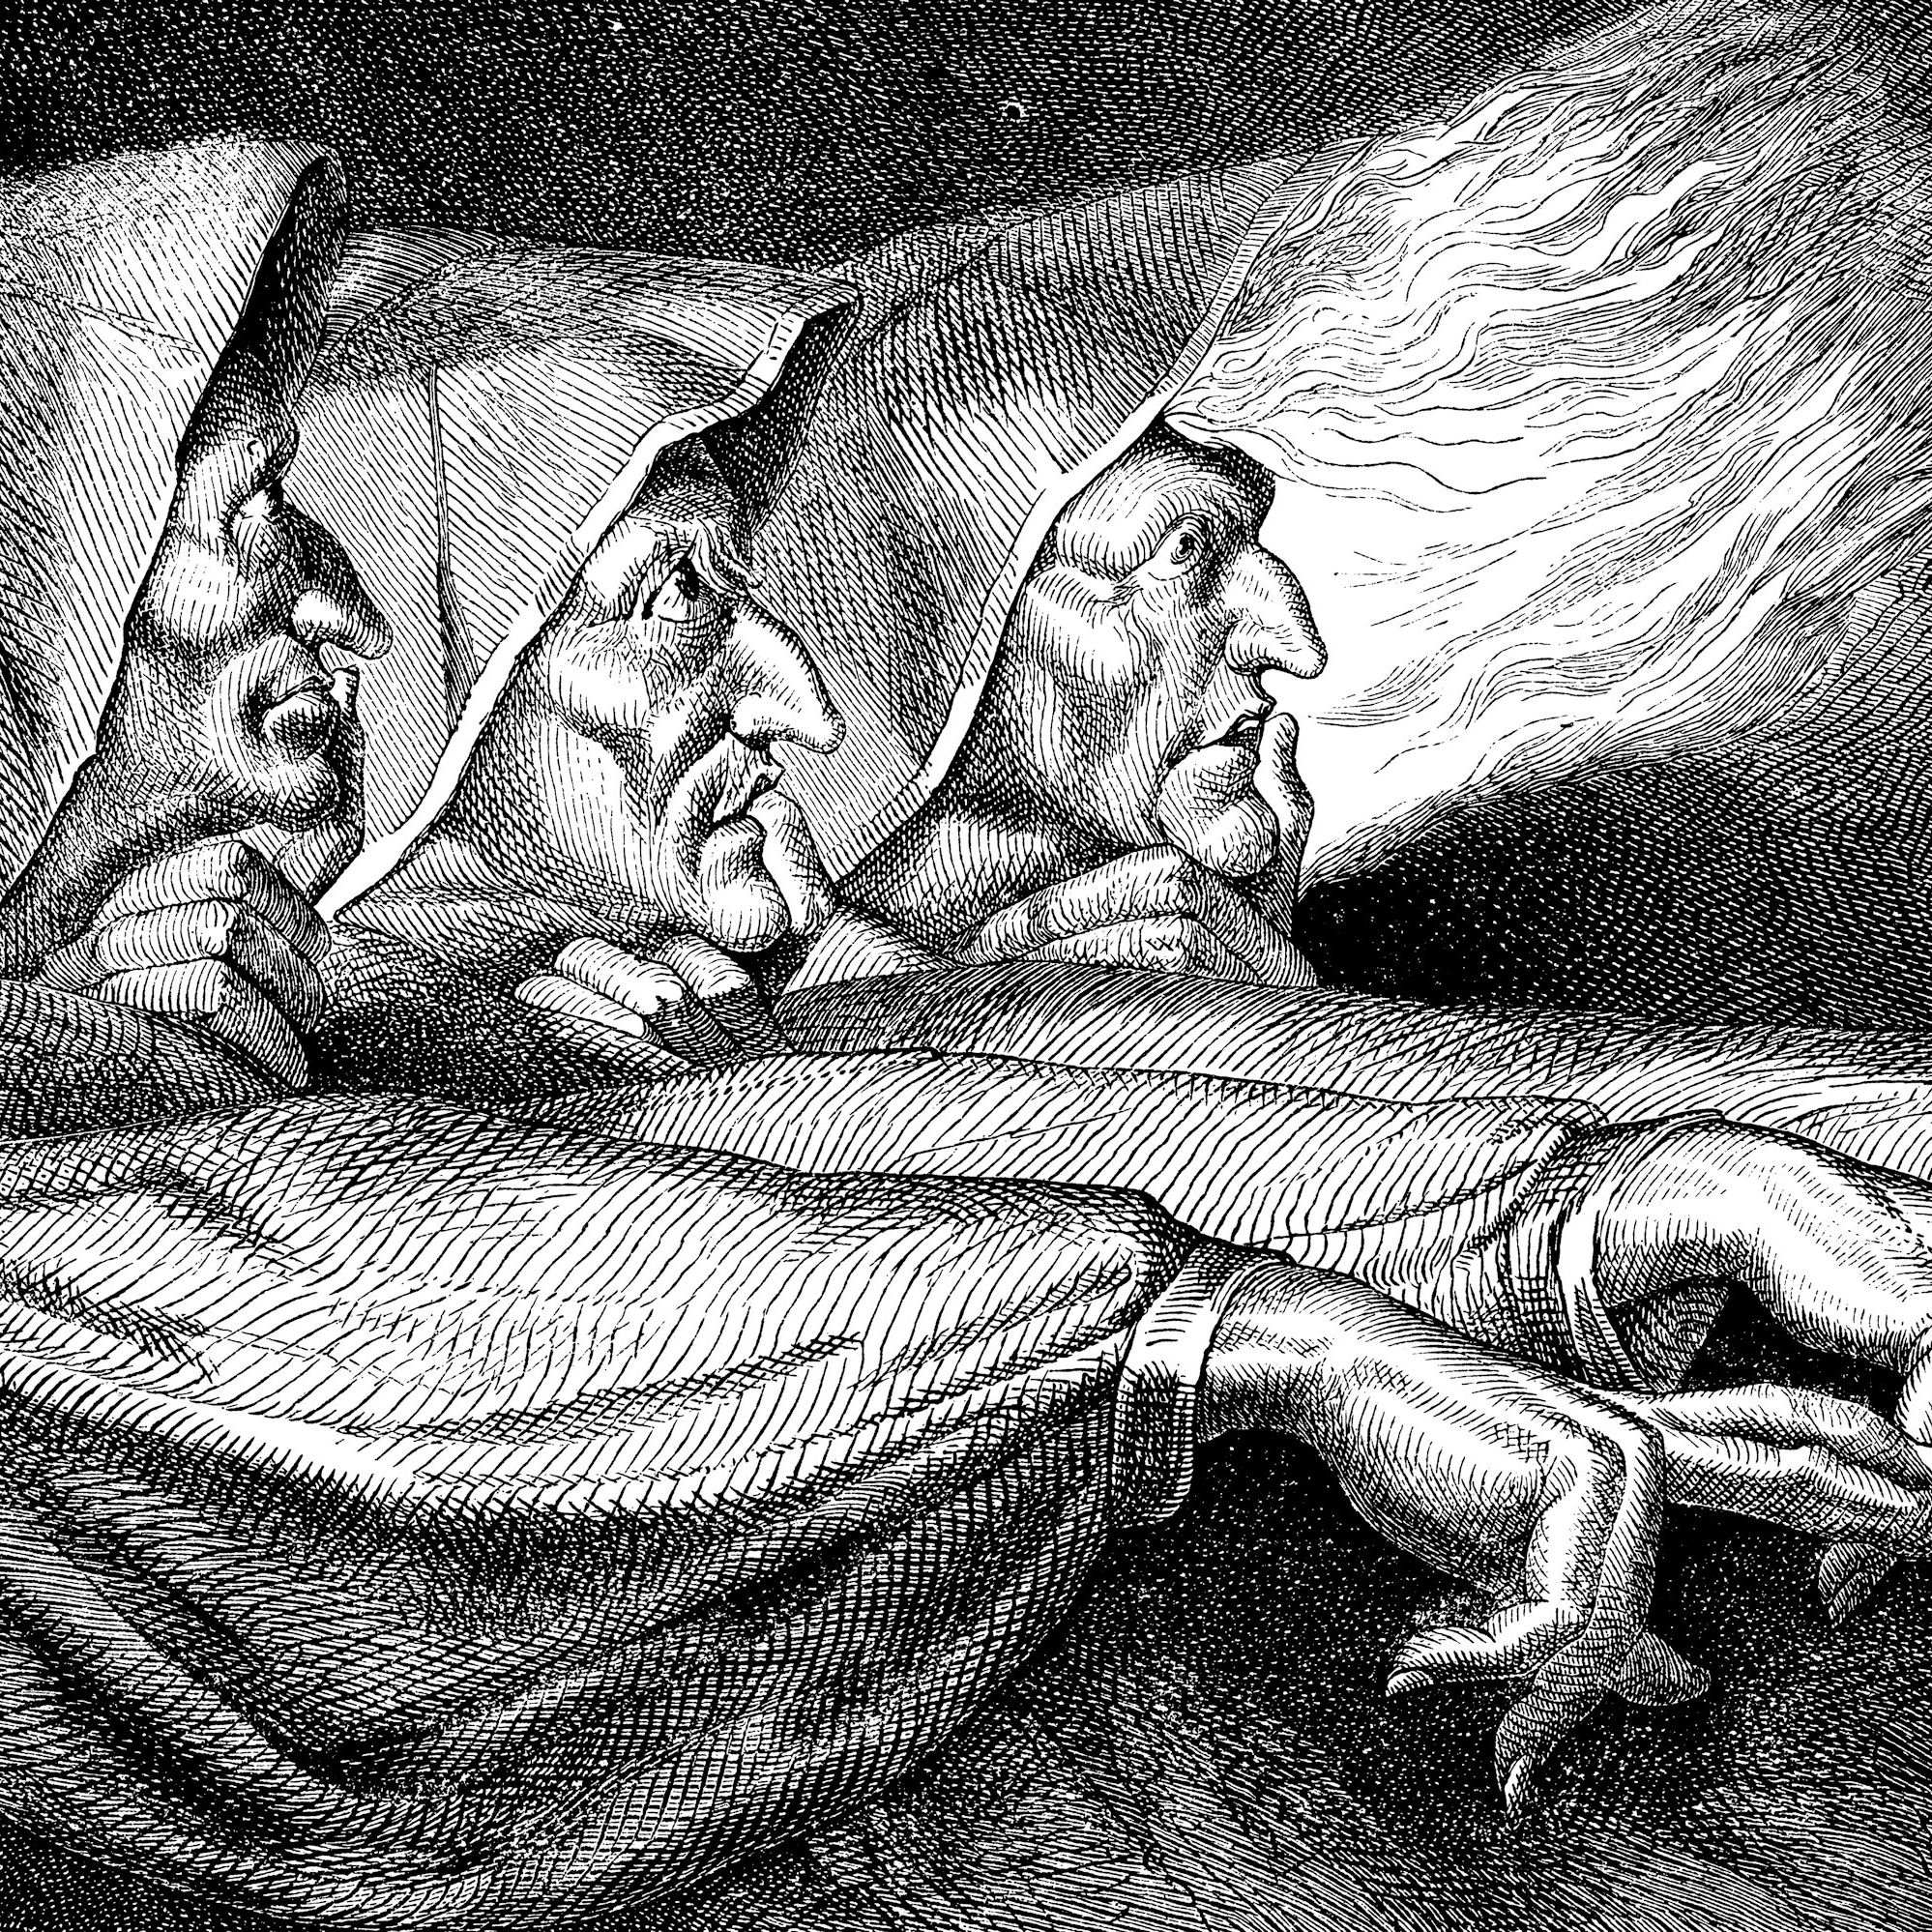 Three Weird Sisters Macbeth 7